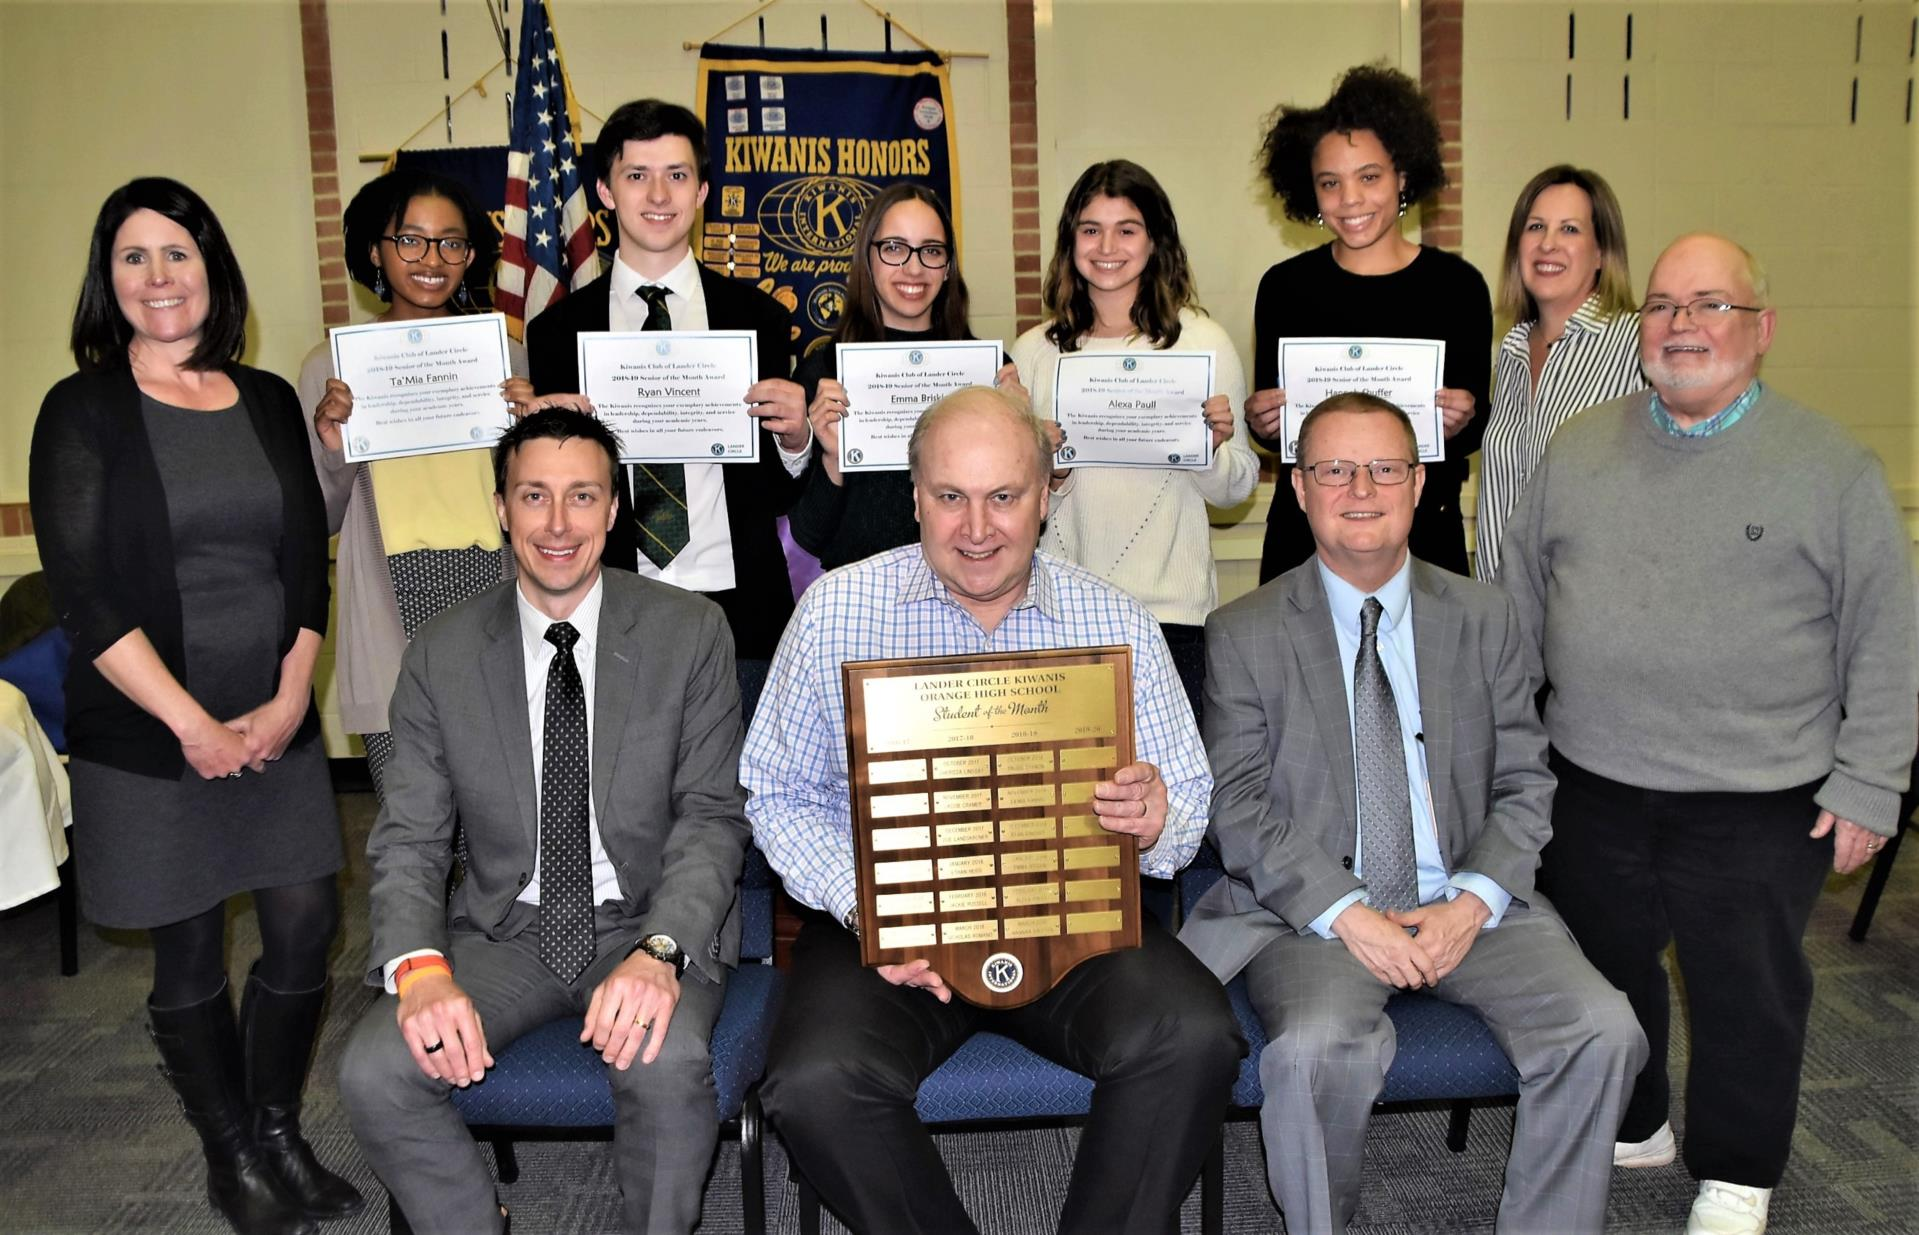 Kiwanis student winners with Kiwanis Members and Orange Schools staff